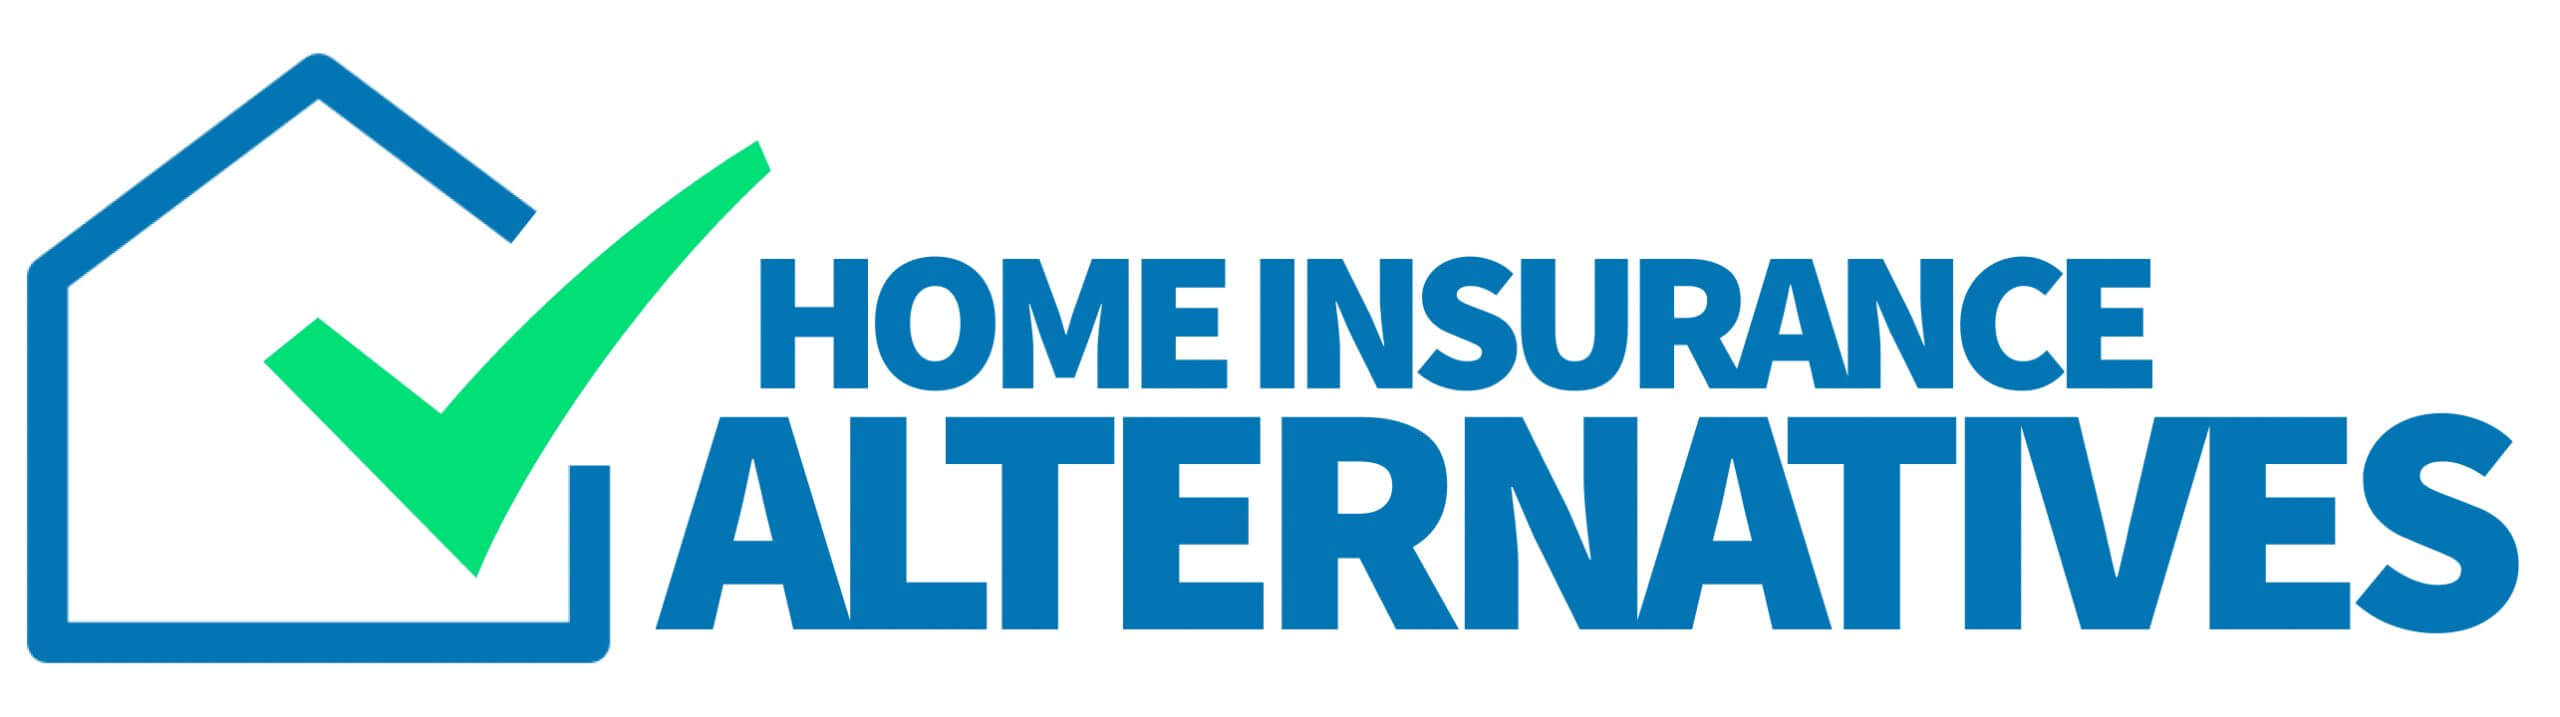 Home Insurance Alternatives